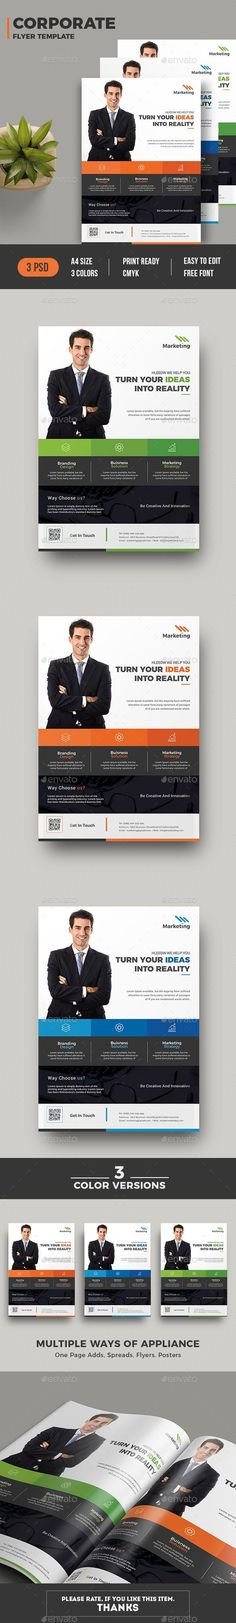 You can use this template for any kind of company or business promotion as well as advertising. Fully editable template, you change images and texts by some simple clicks. Features of Corporate Paper Size With Bleed 0 Free Flyer Templates, Business Flyer Templates, Print Templates, Flyer Free, Business Flyers, Corporate Brochure, Brochure Design, Flyer Design, Logo Magazine